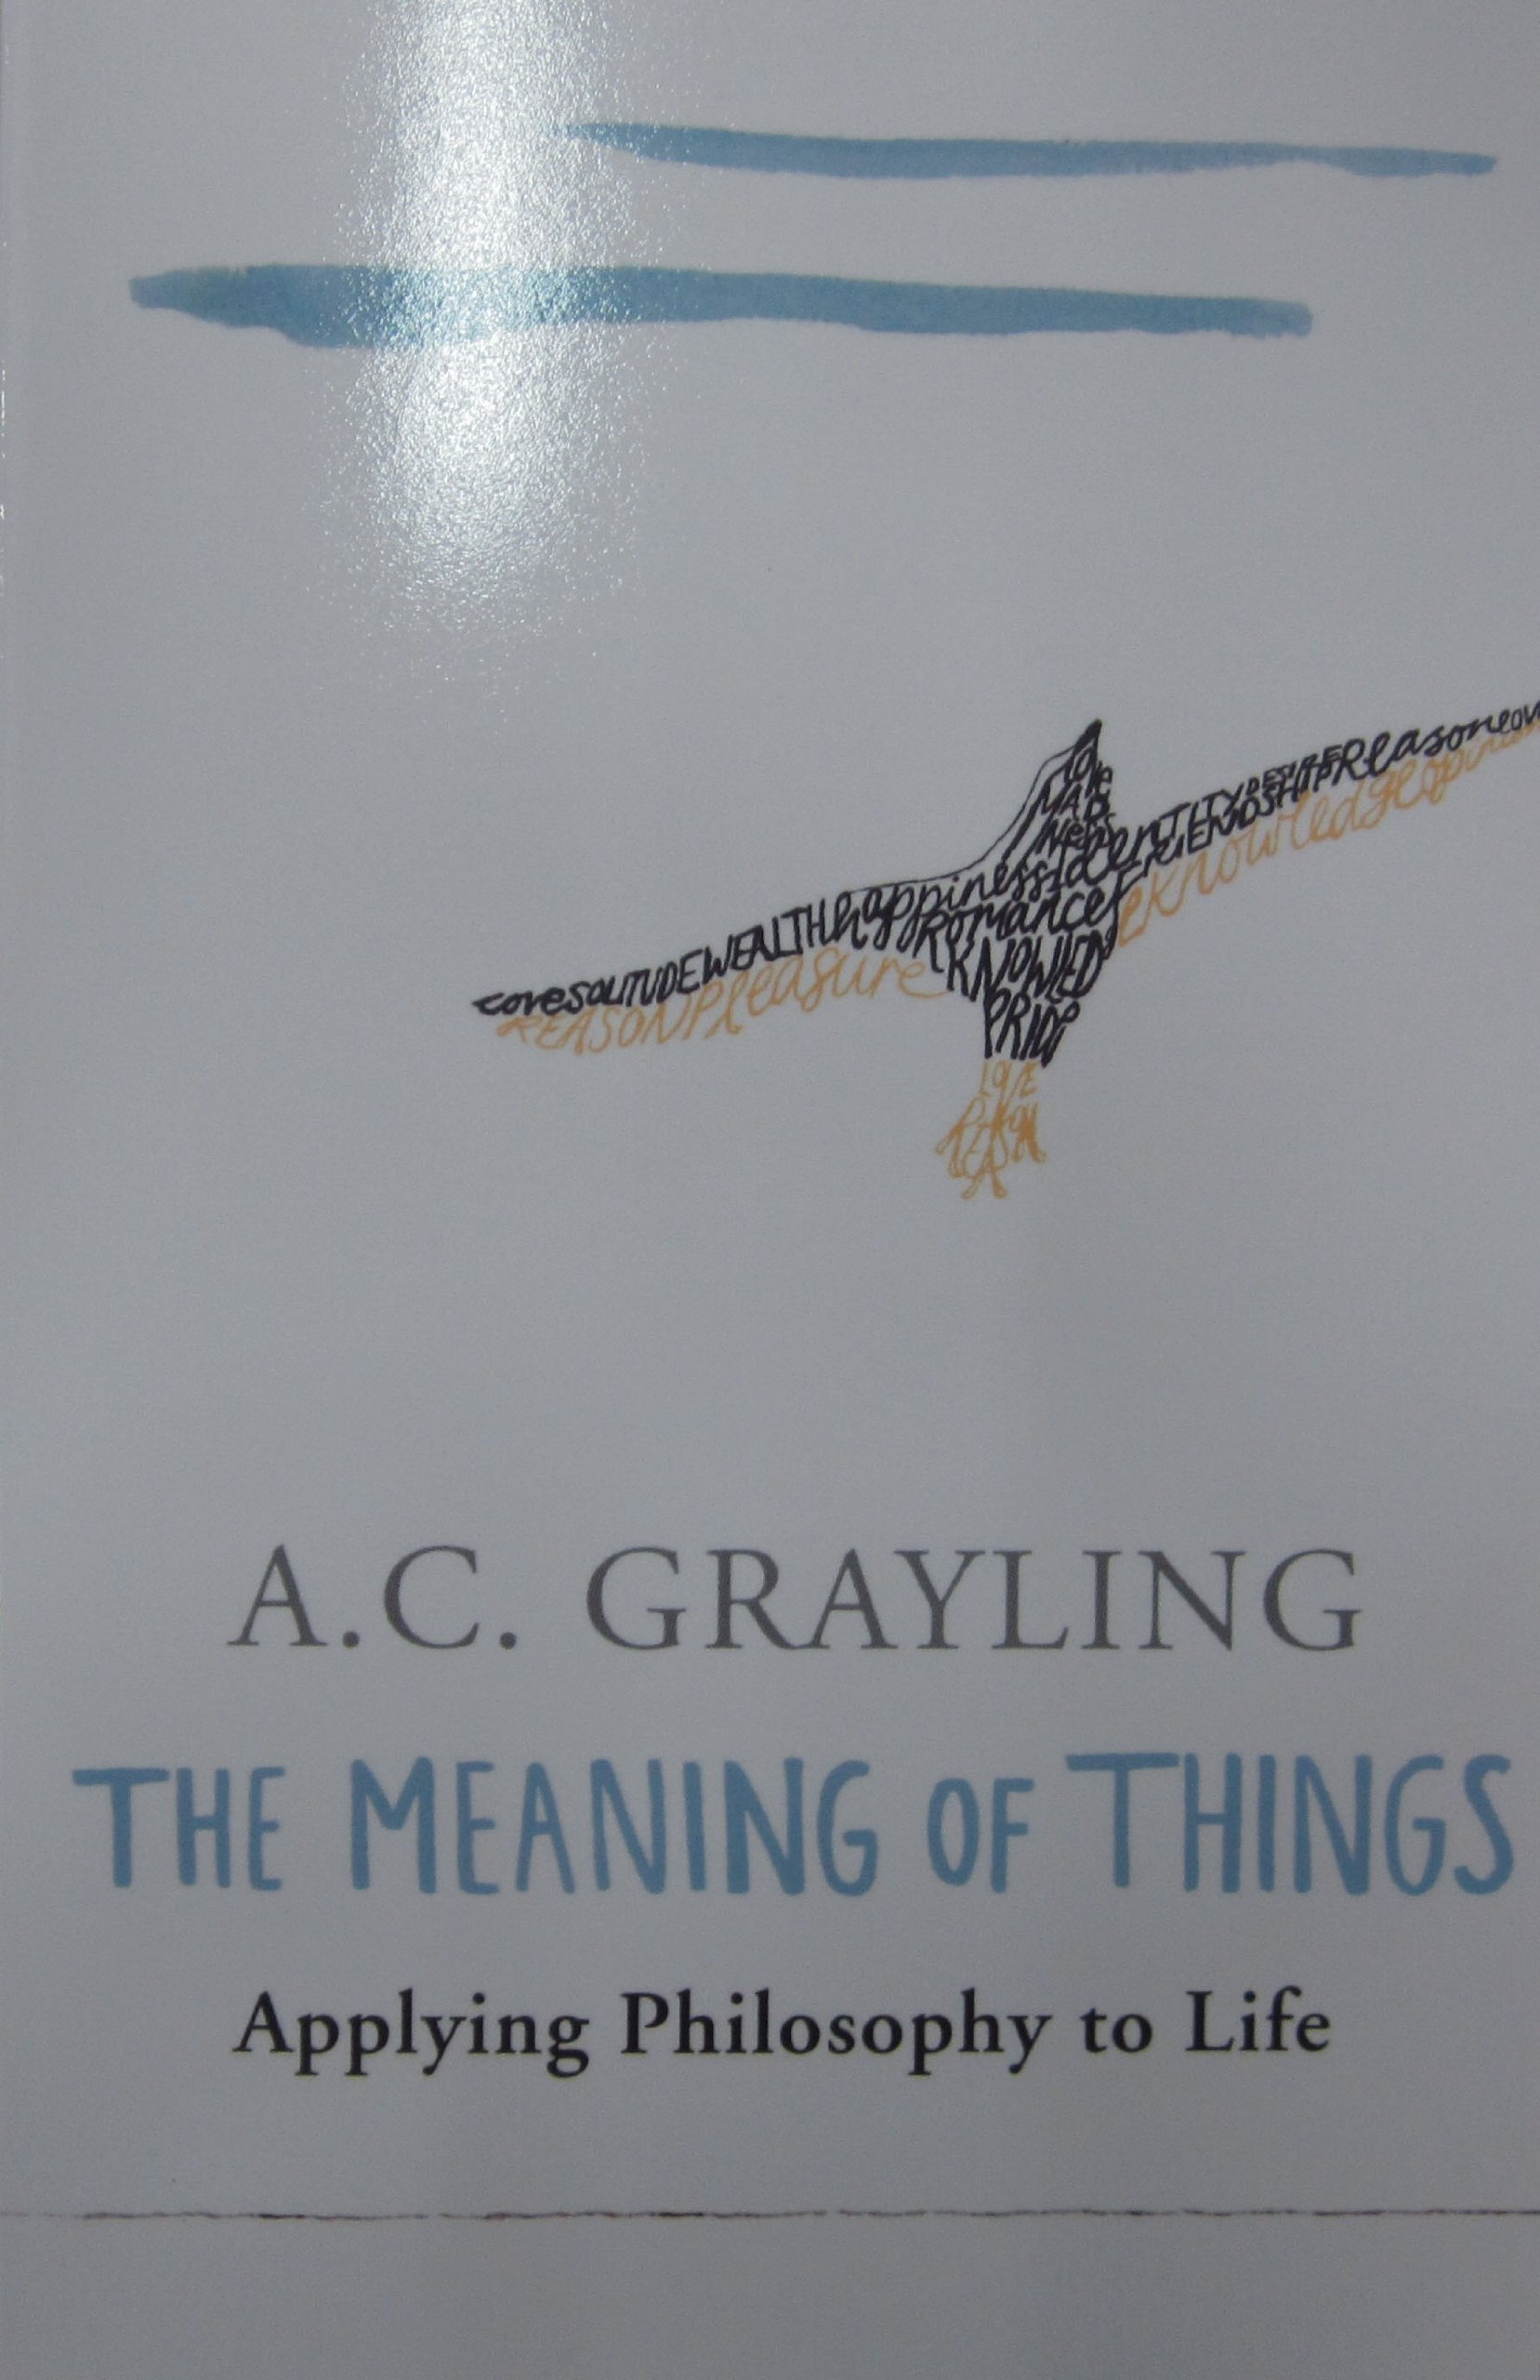 the meaning of things applying philosophy to life a c grayling the meaning of things applying philosophy to life a c grayling 9780753813591 amazon com books